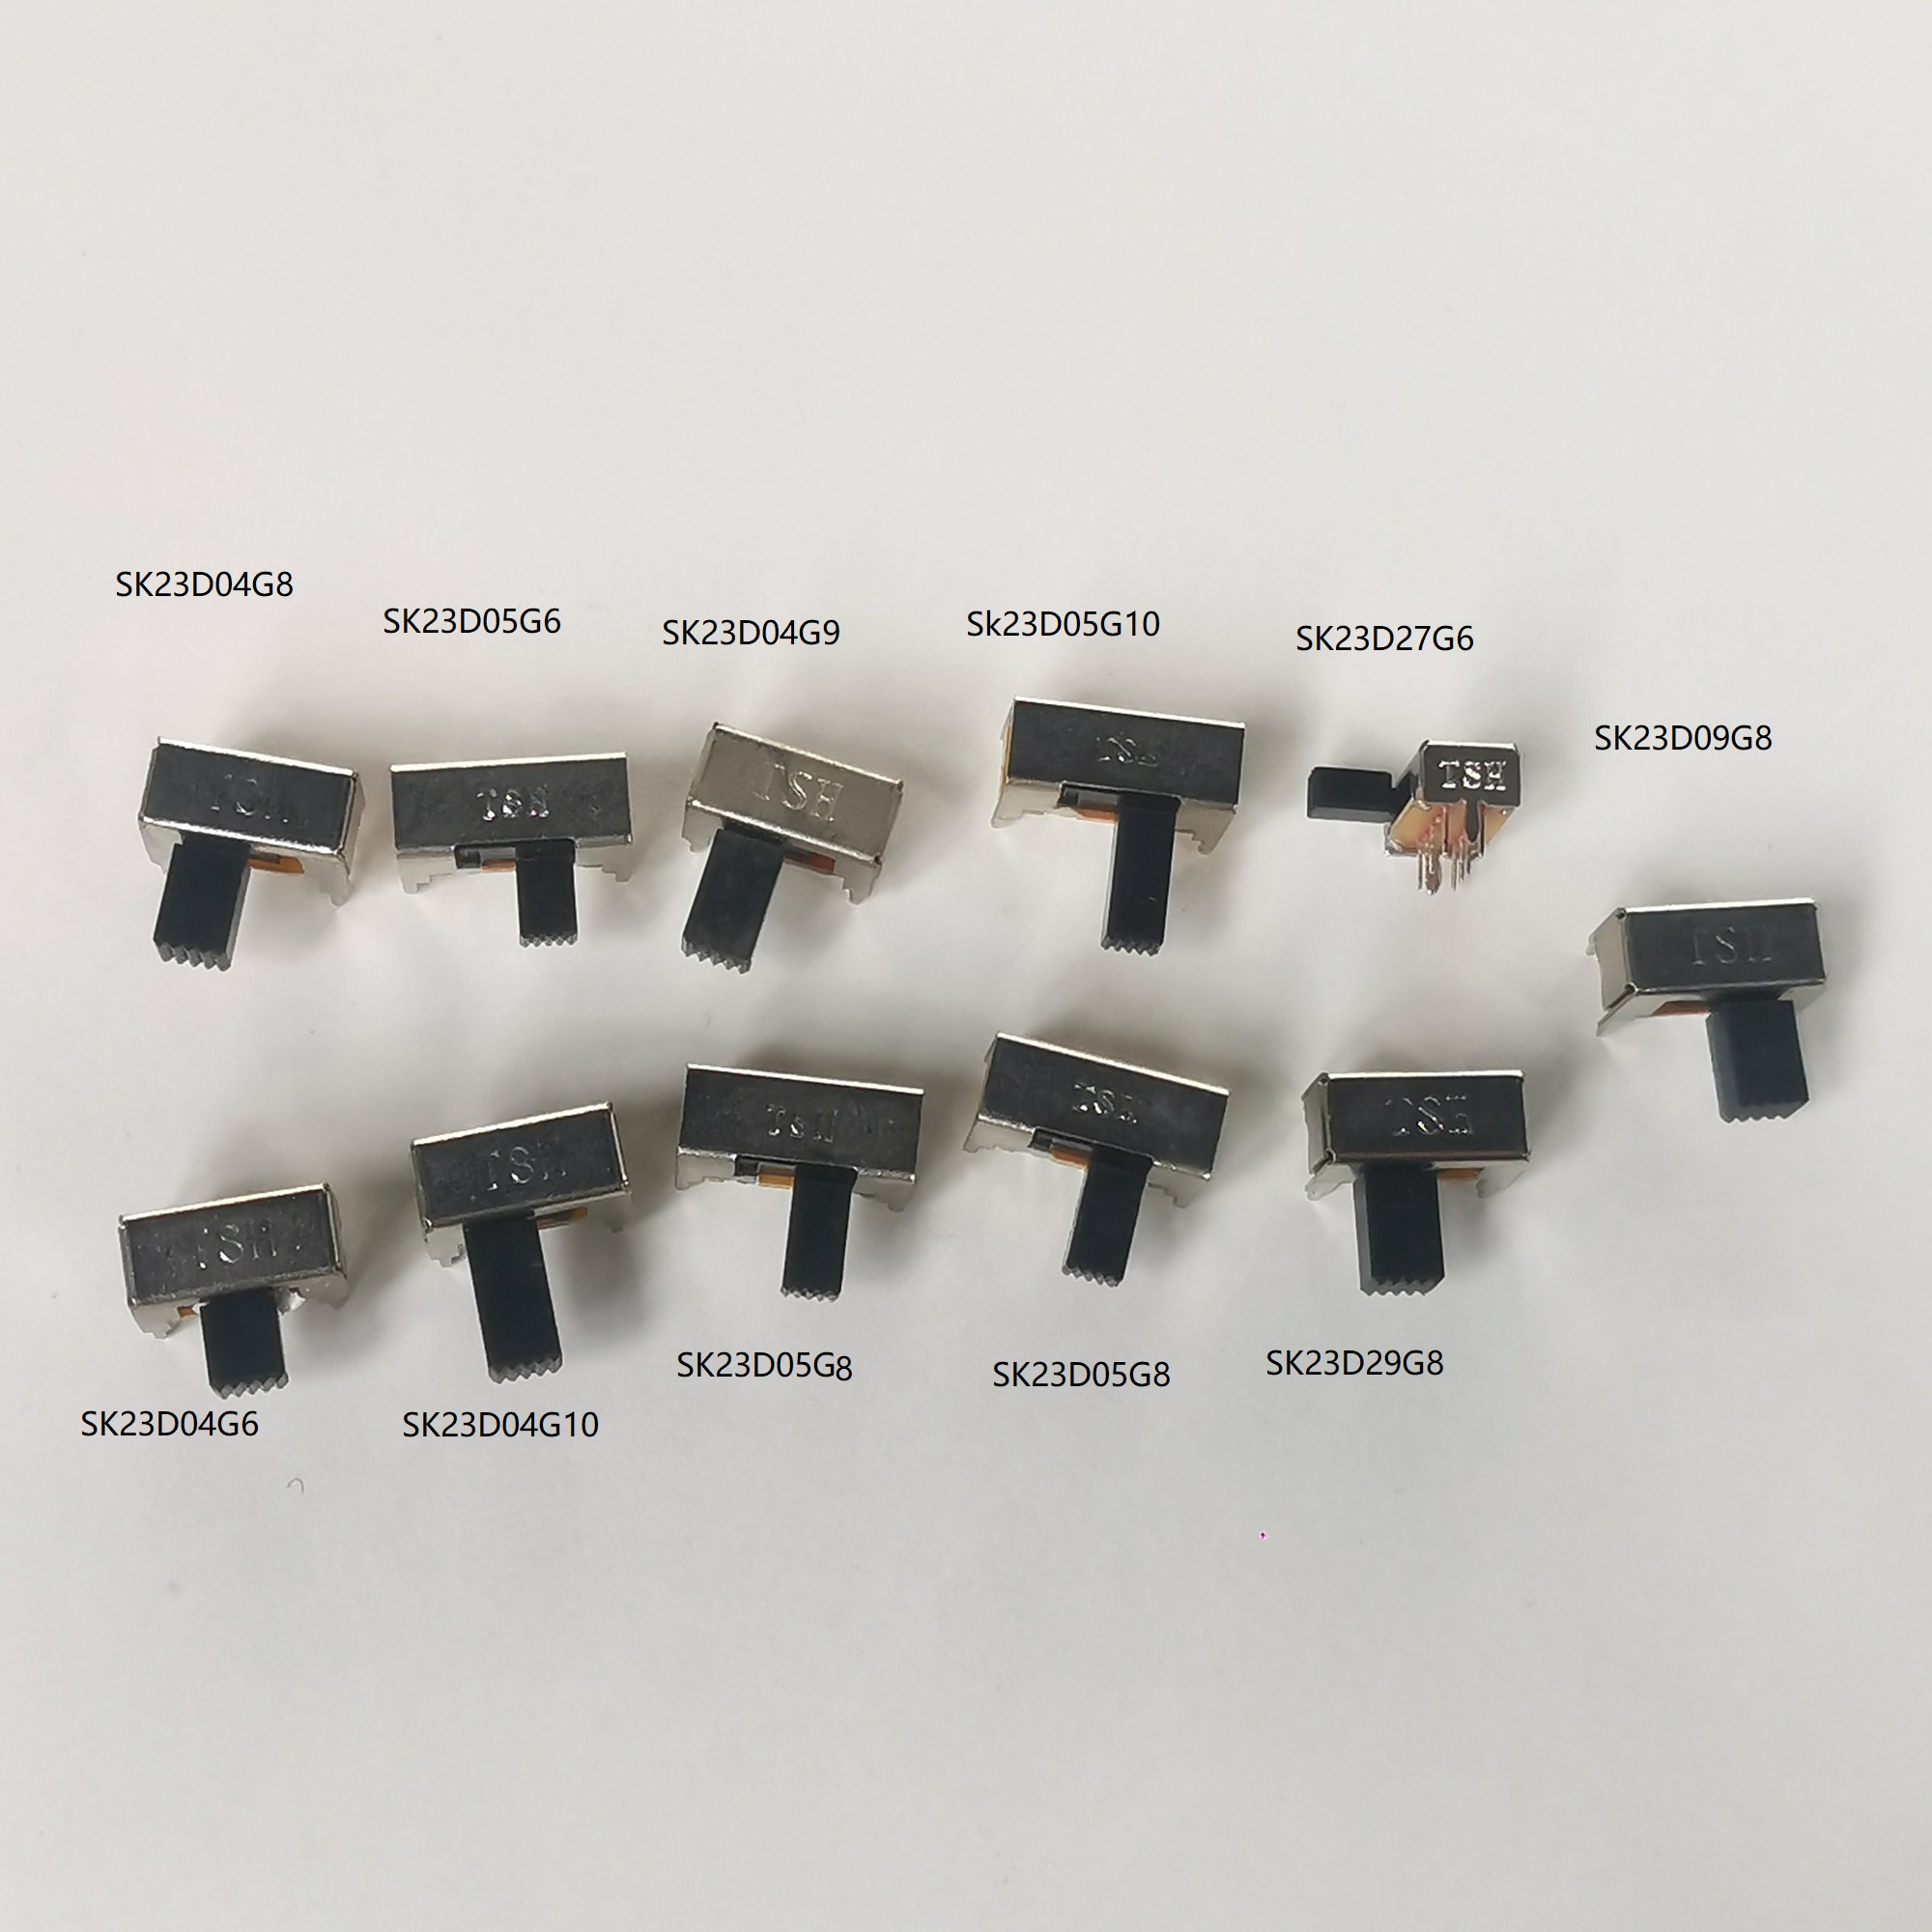 10PCS/Lot 8 Pin toggle switch Slide Switch Horizontal switch lever switch SK23D04G9 left three right one Ex-factor price